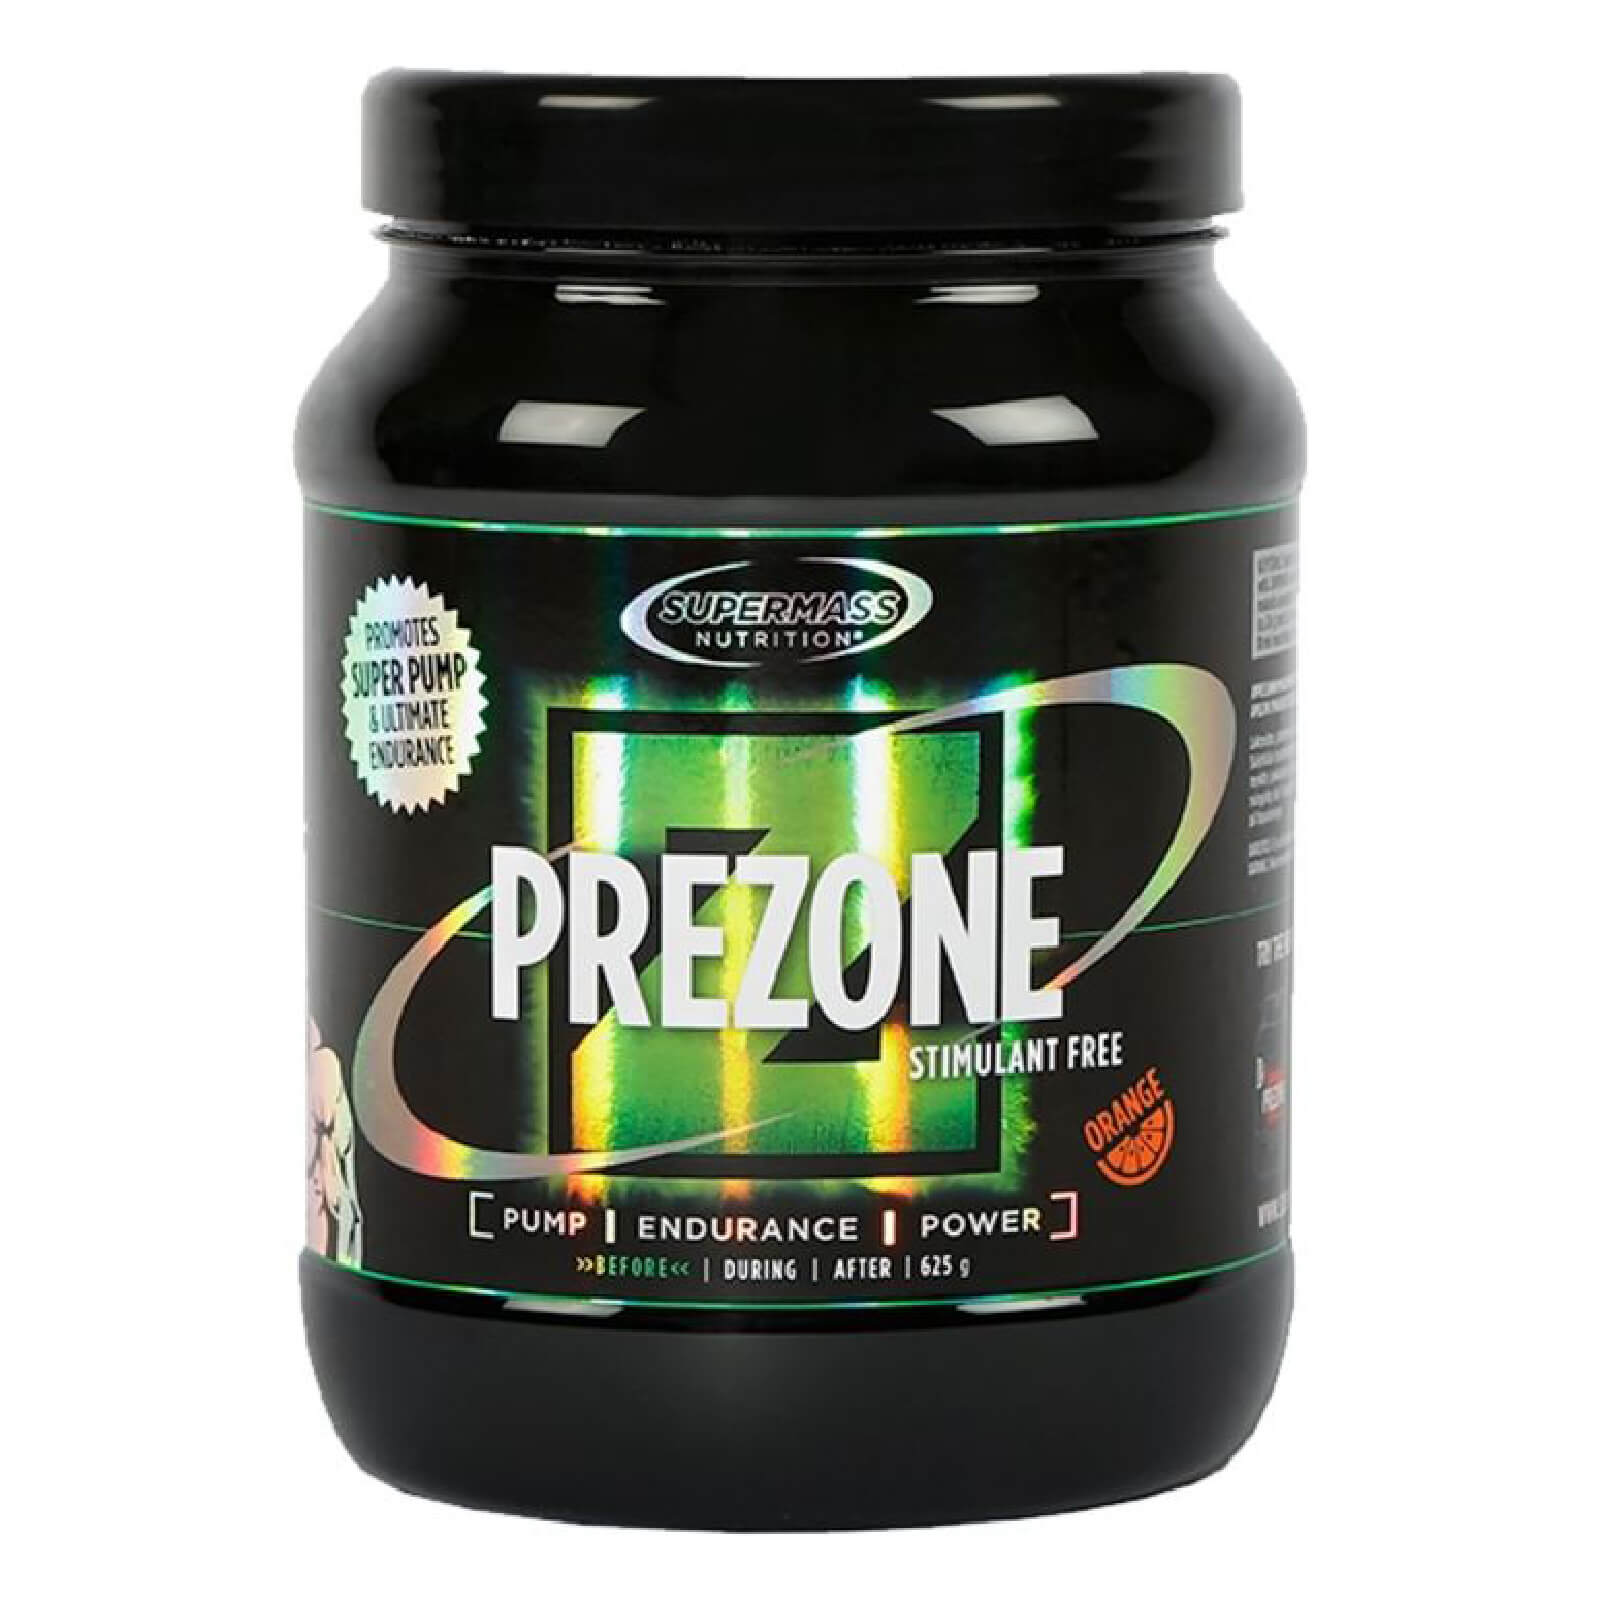 SUPERMASS PreZone Stimulant Free - Orange 625g